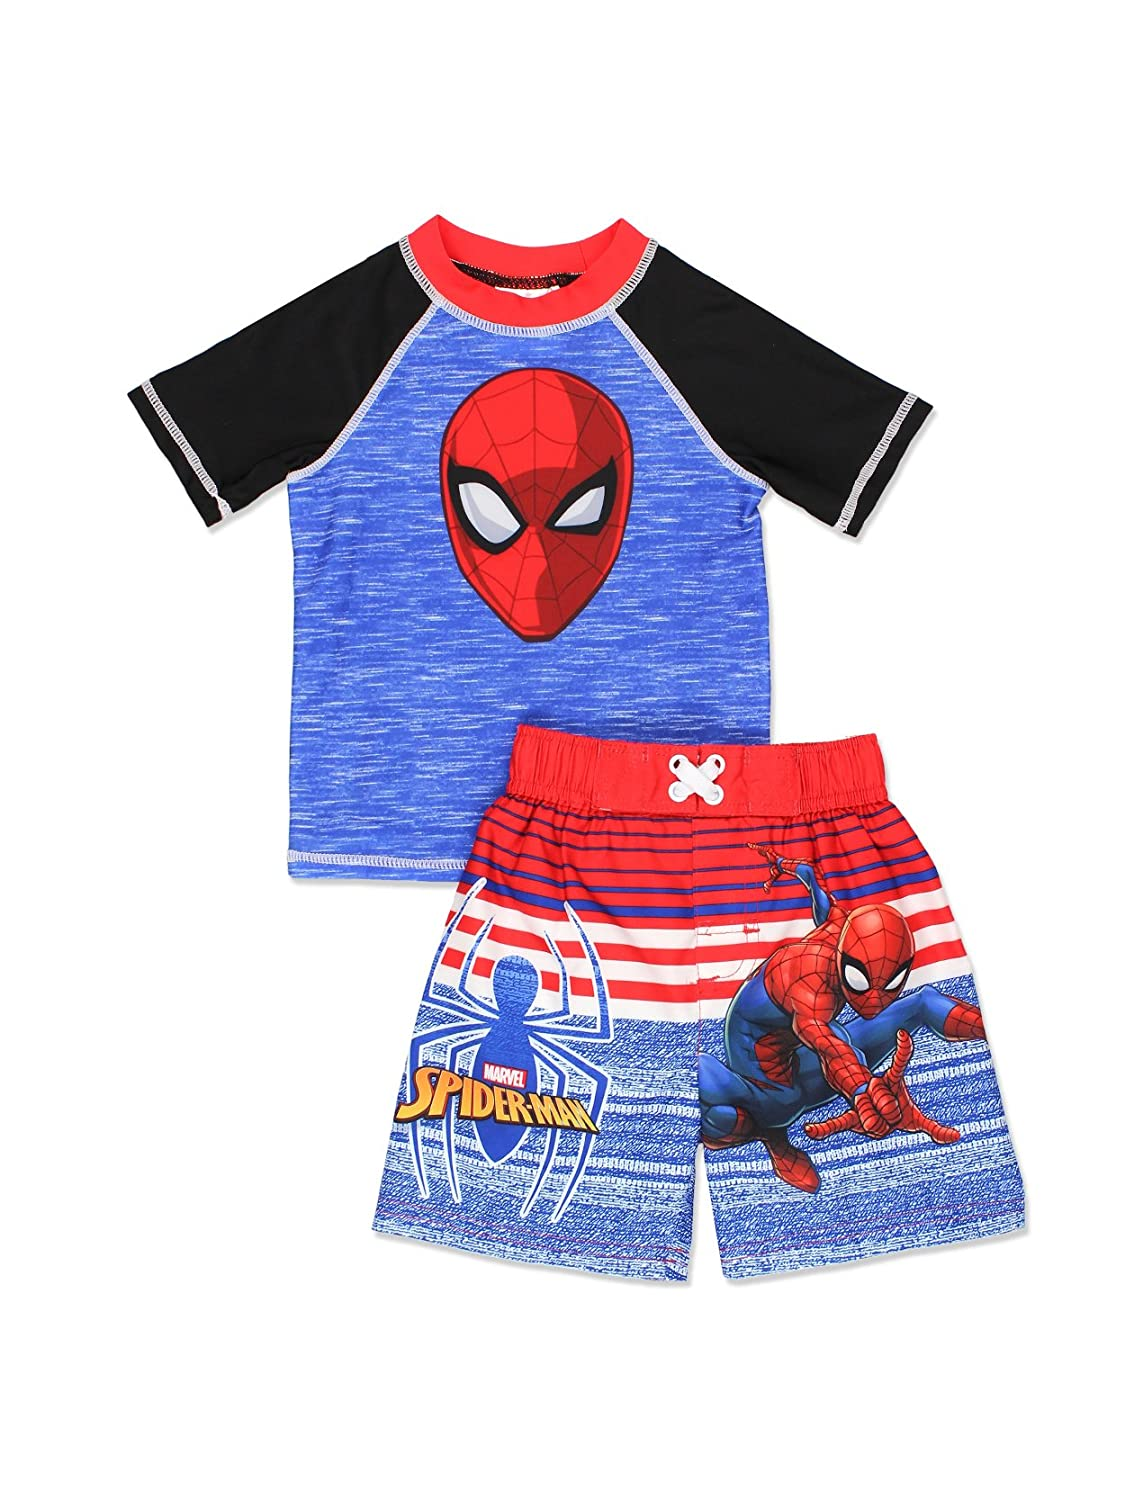 426d4ad7b7284 Get ready to save the summer in these awesome Marvel Comics Spider-Man  two-piece sets! Each set includes a rash guard top and swim trunks  featuring your ...